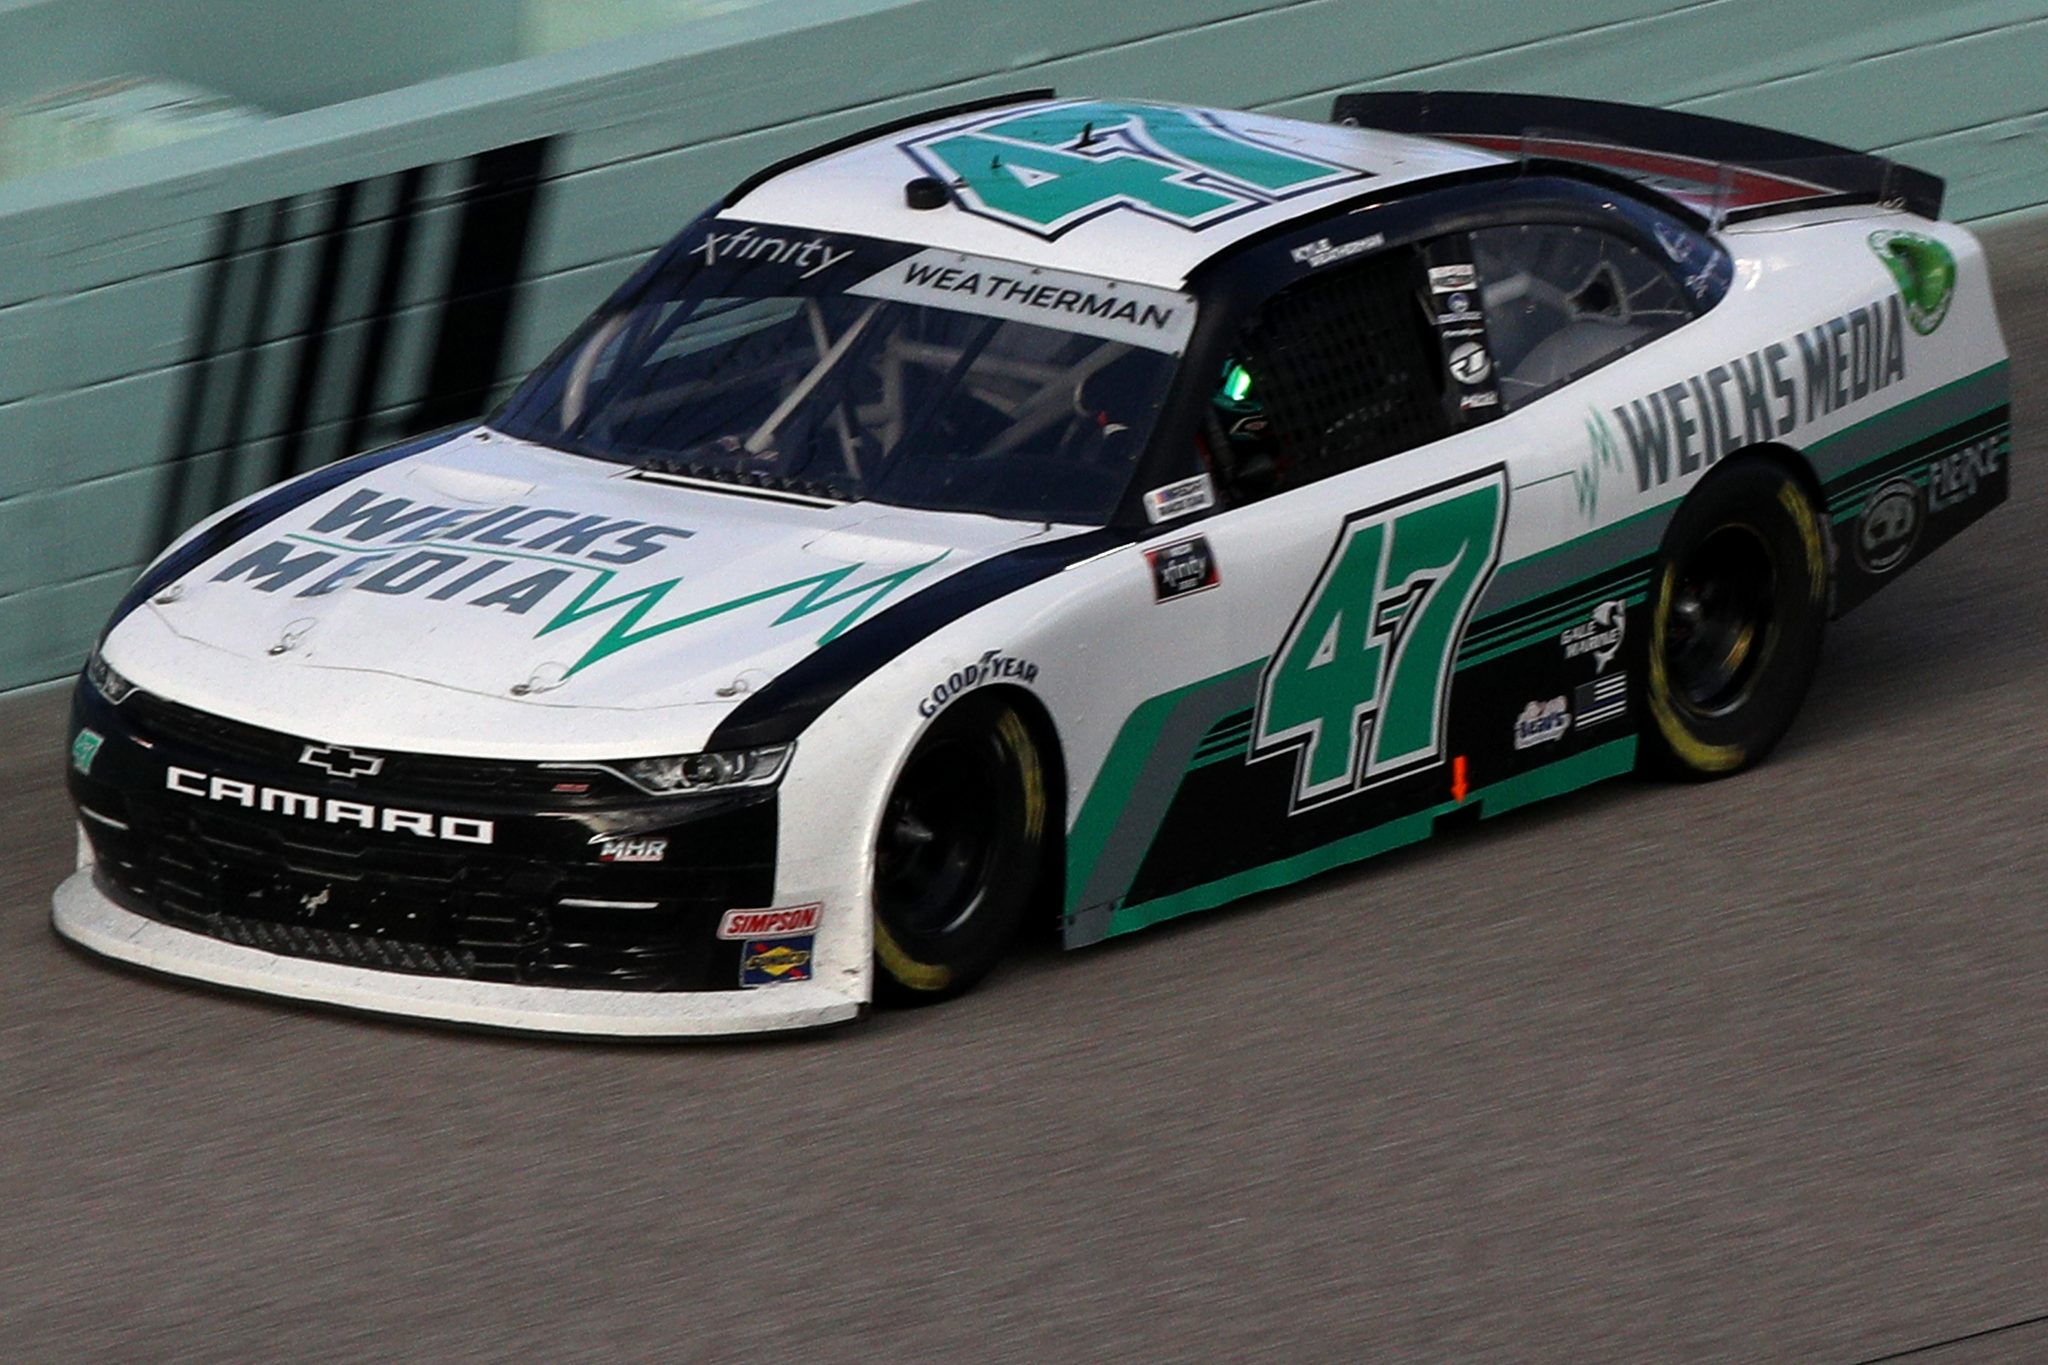 HOMESTEAD, FLORIDA - FEBRUARY 27: Kyle Weatherman, driver of the #47 Weiks Media Chevrolet, drives during the NASCAR Xfinity Series Contender Boats 250 at Homestead-Miami Speedway on February 27, 2021 in Homestead, Florida. (Photo by Sean Gardner/Getty Images) | Getty Images